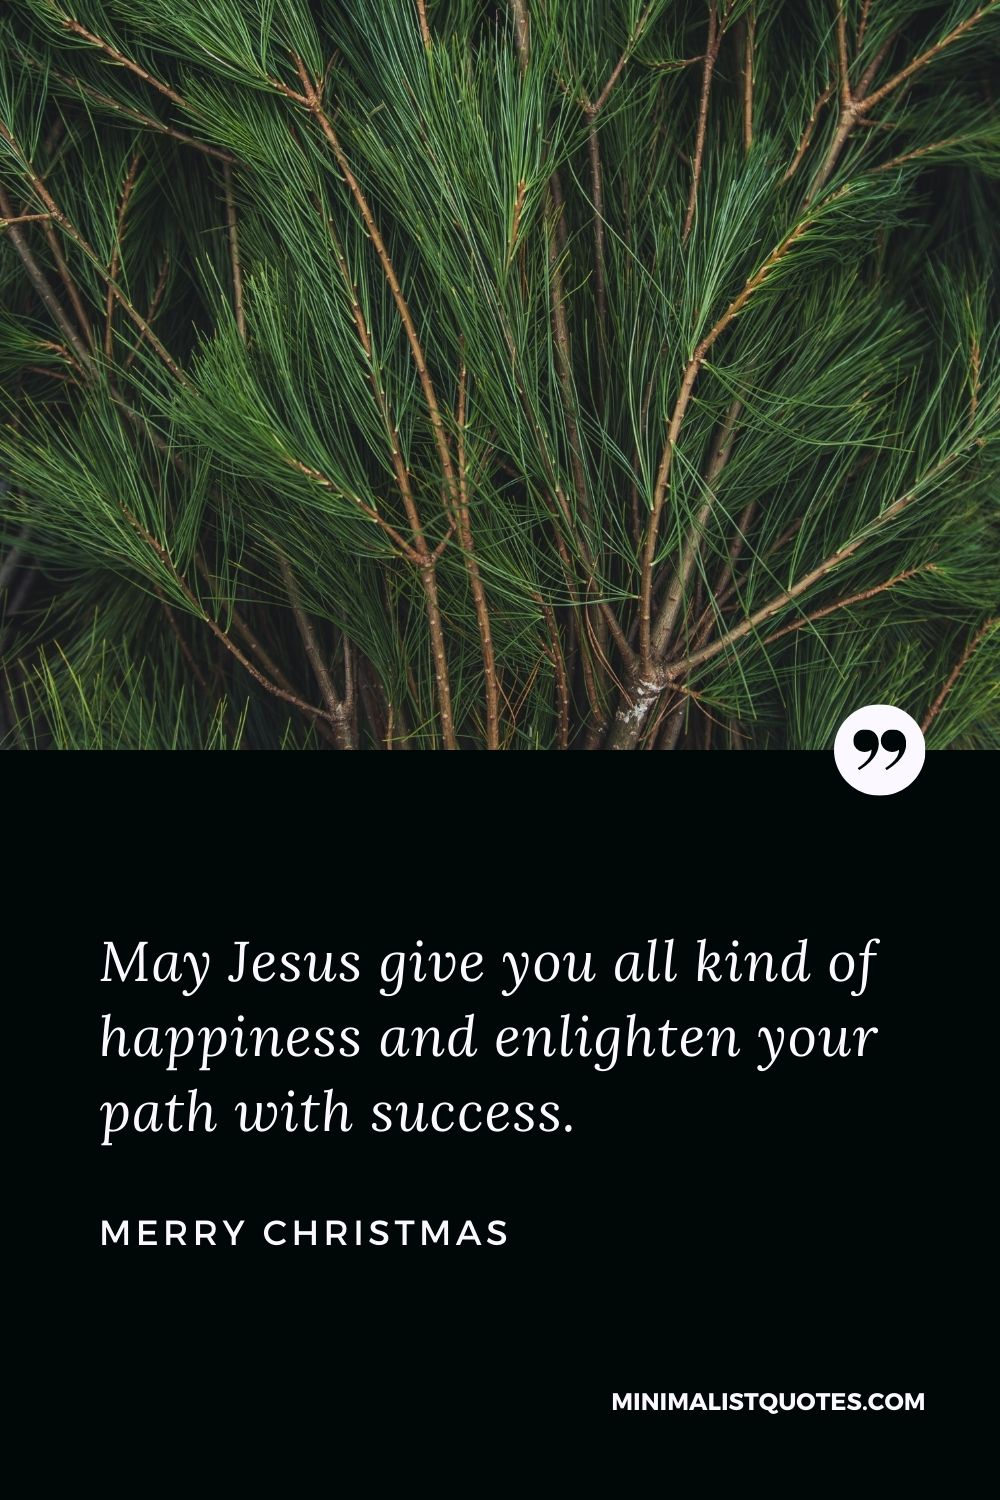 Merry Christmas Wish - May Jesus give you all kind of happiness and enlightenyour path with success.